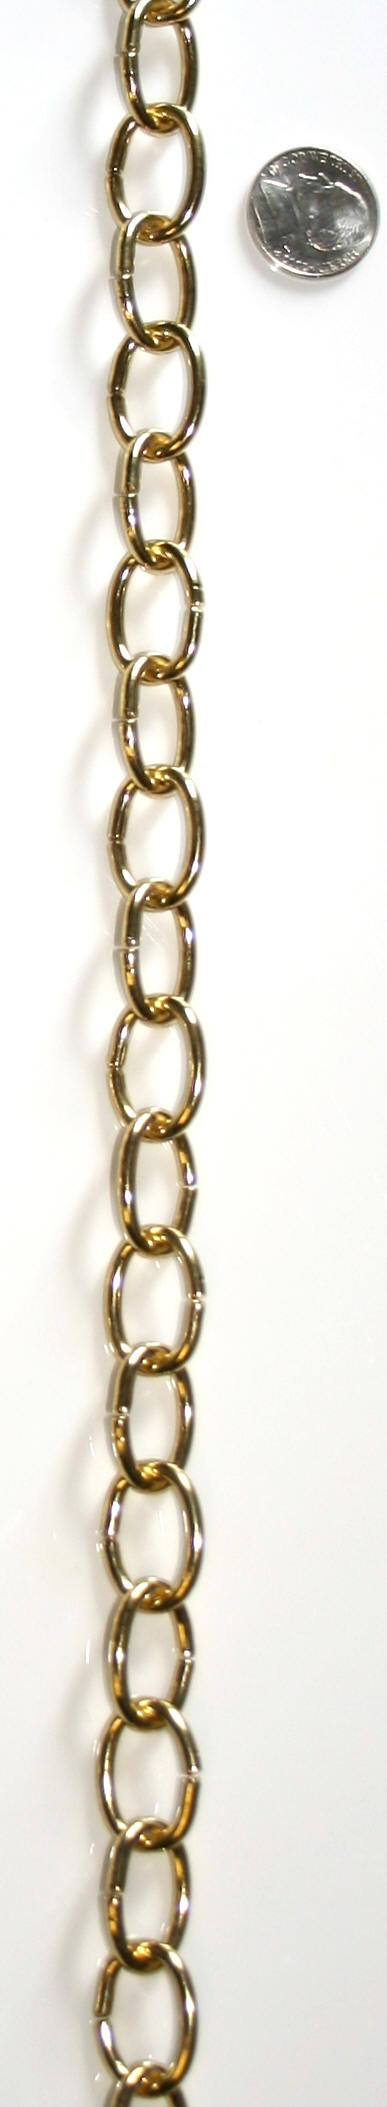 pin chain chandelier rectangle rounded brass chains